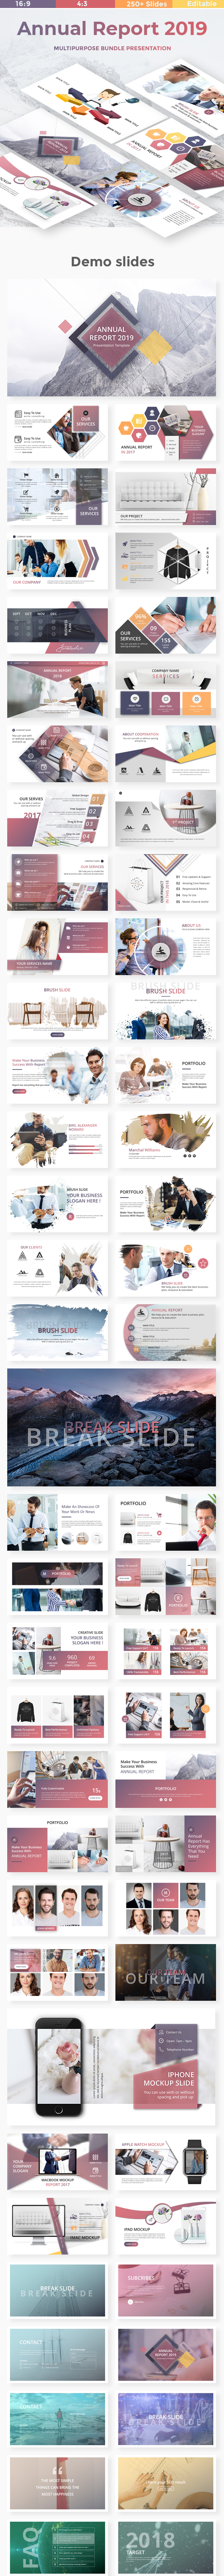 Annual Report 2019 - Business Powerpoint Template - Business PowerPoint Templates